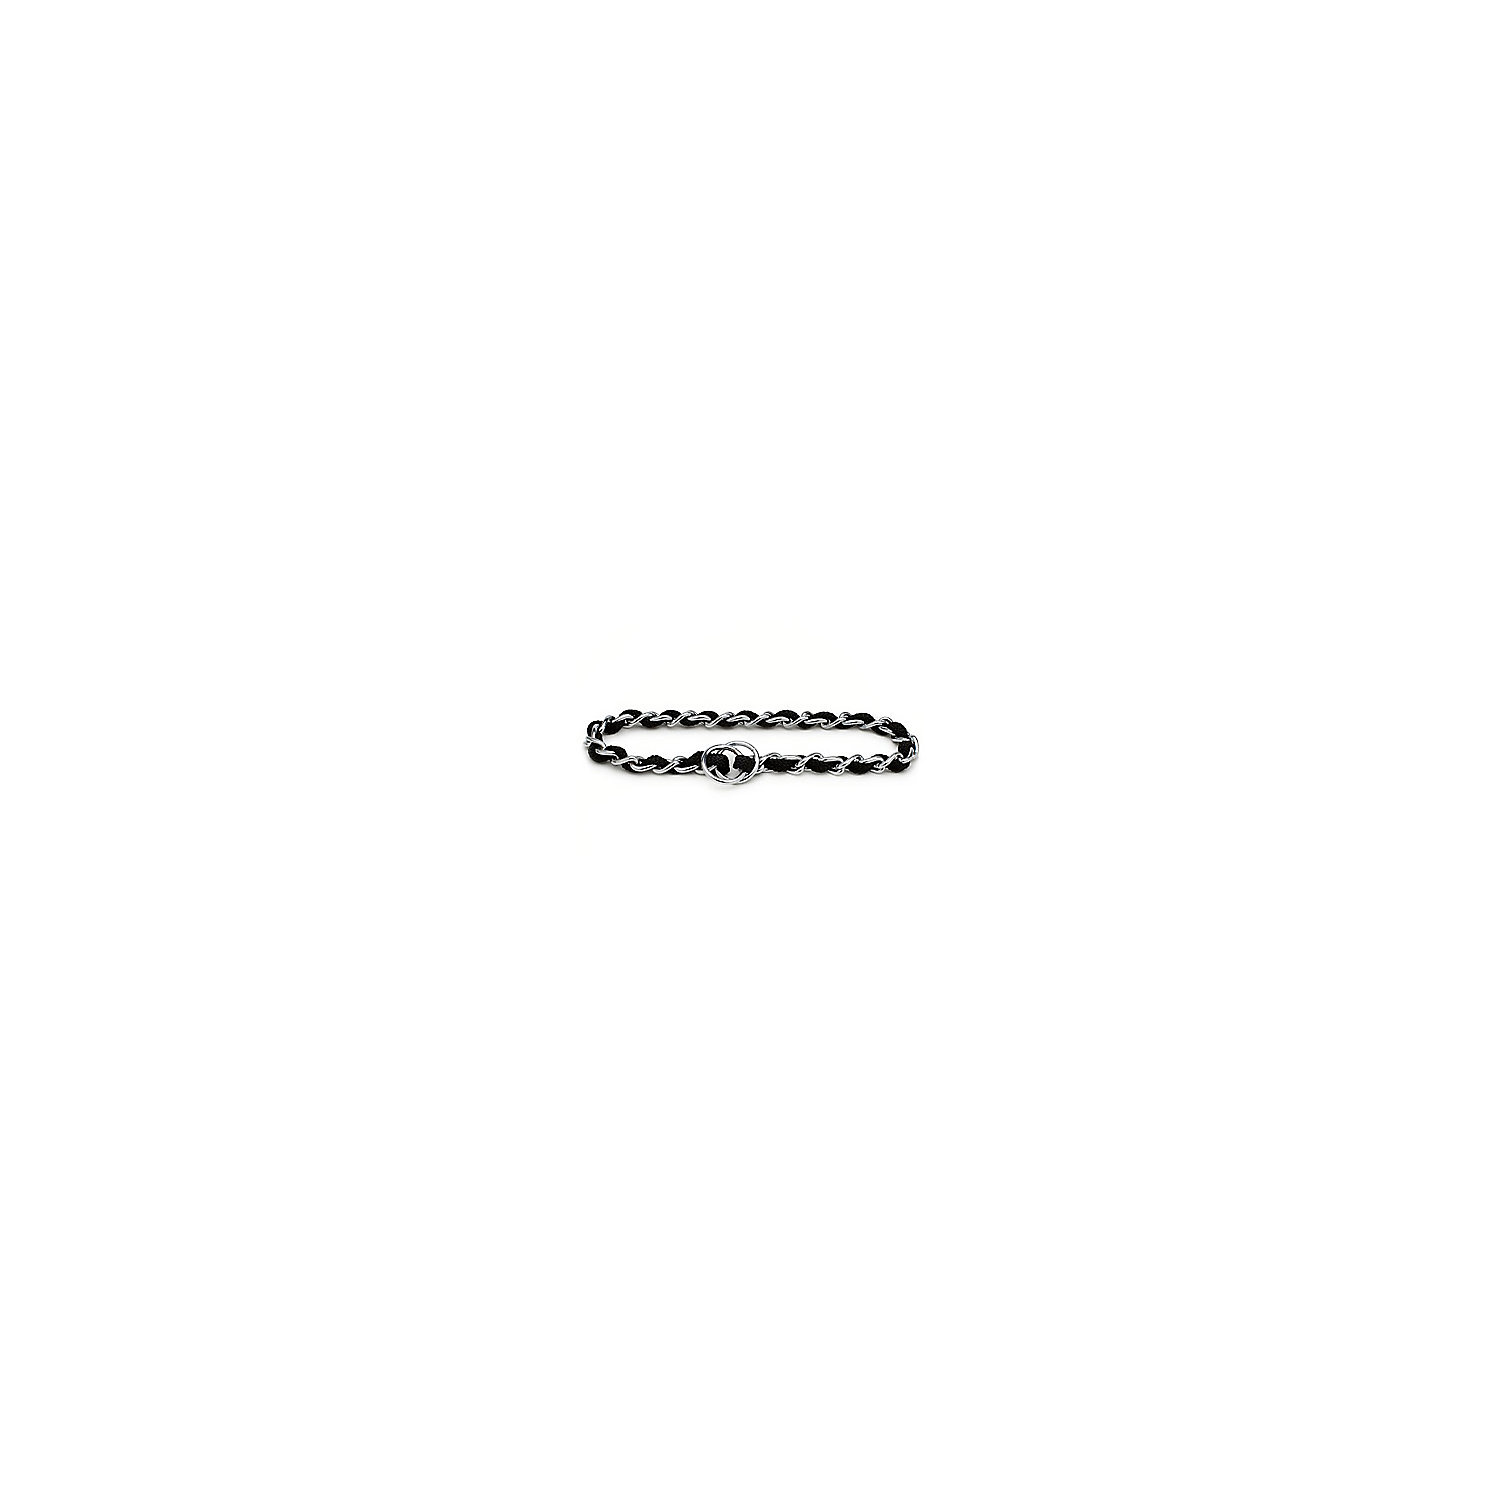 Aspen Pet By Petmate Mighty Link X Large Comfort Chain Dog Collar In Black 24 Length